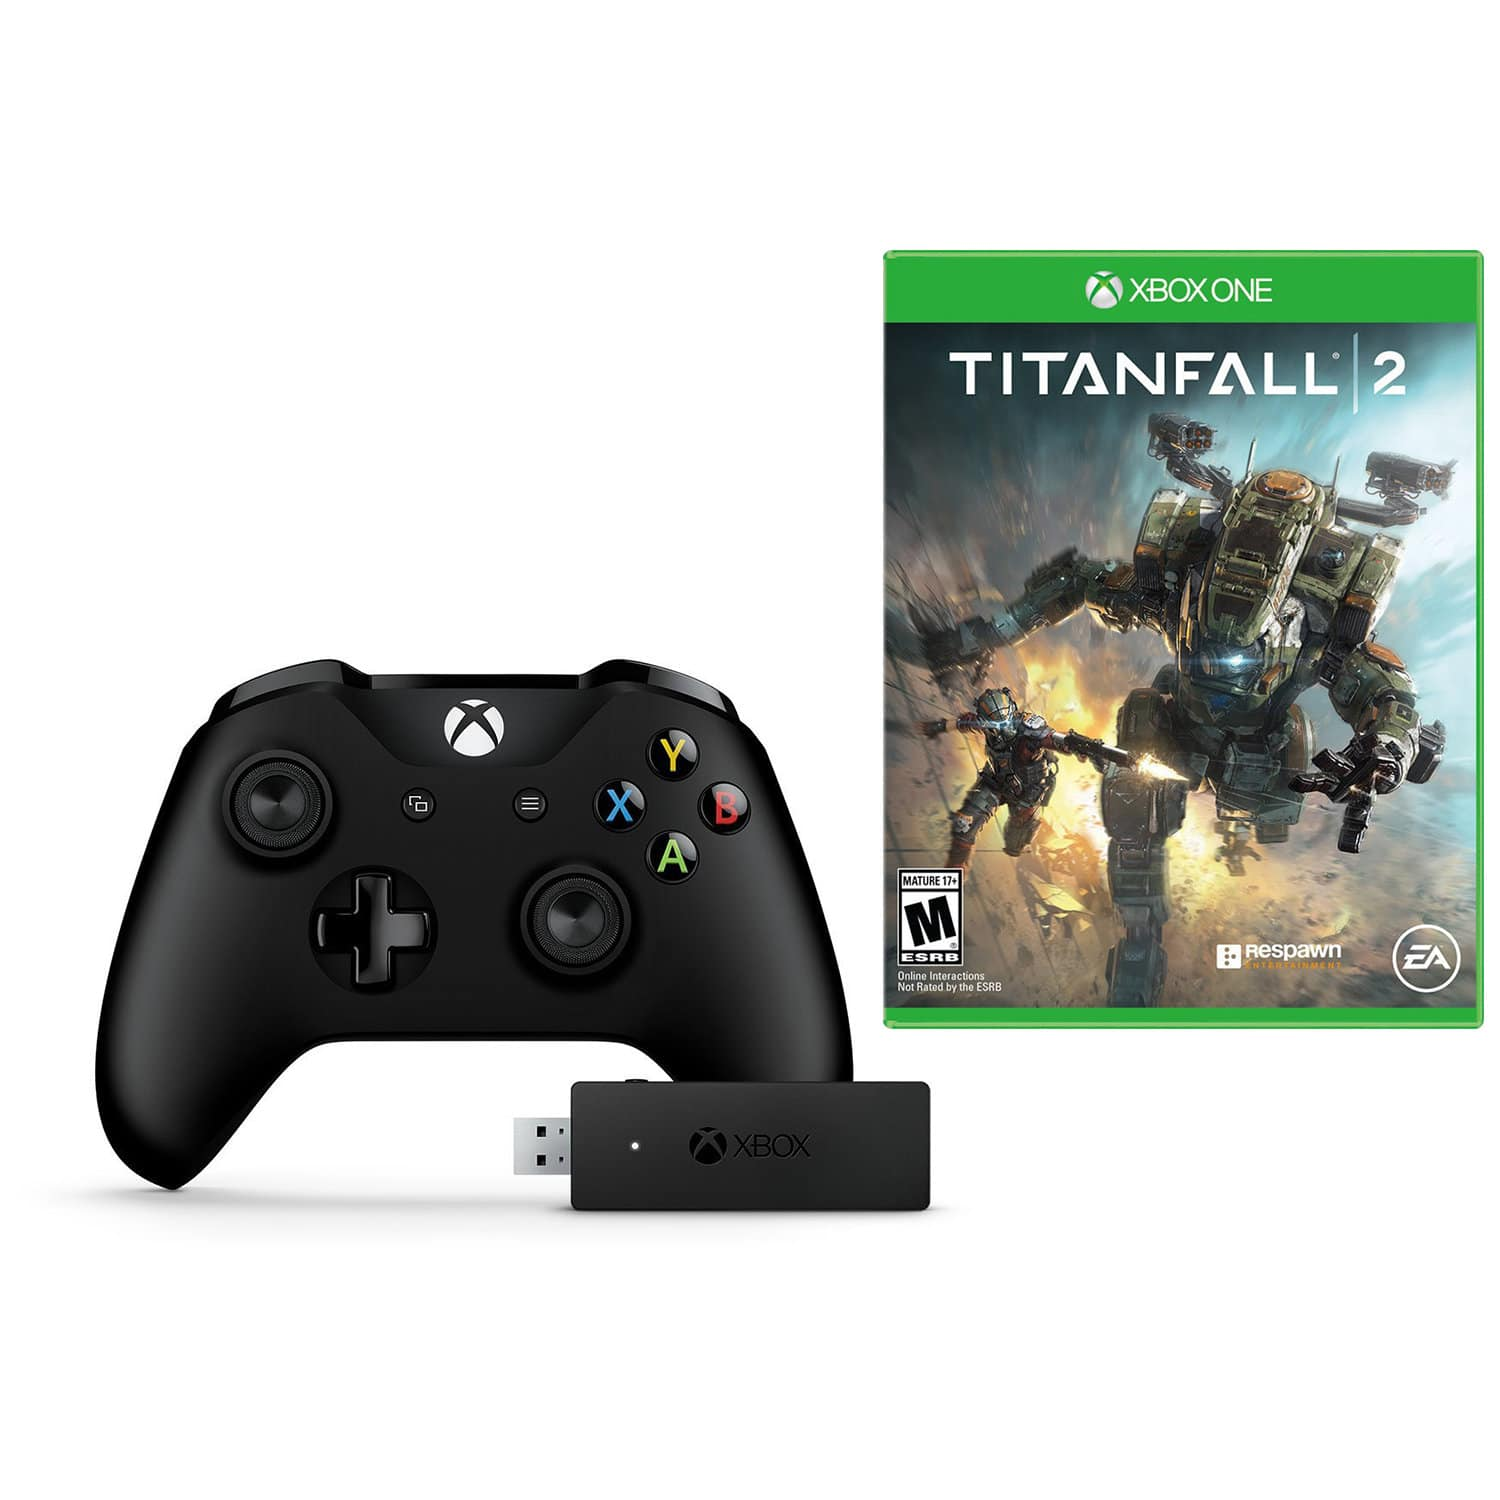 Xbox One Wireless Controller with Adapter for Windows and Titanfall 2 Bundle $55 + Free Shipping